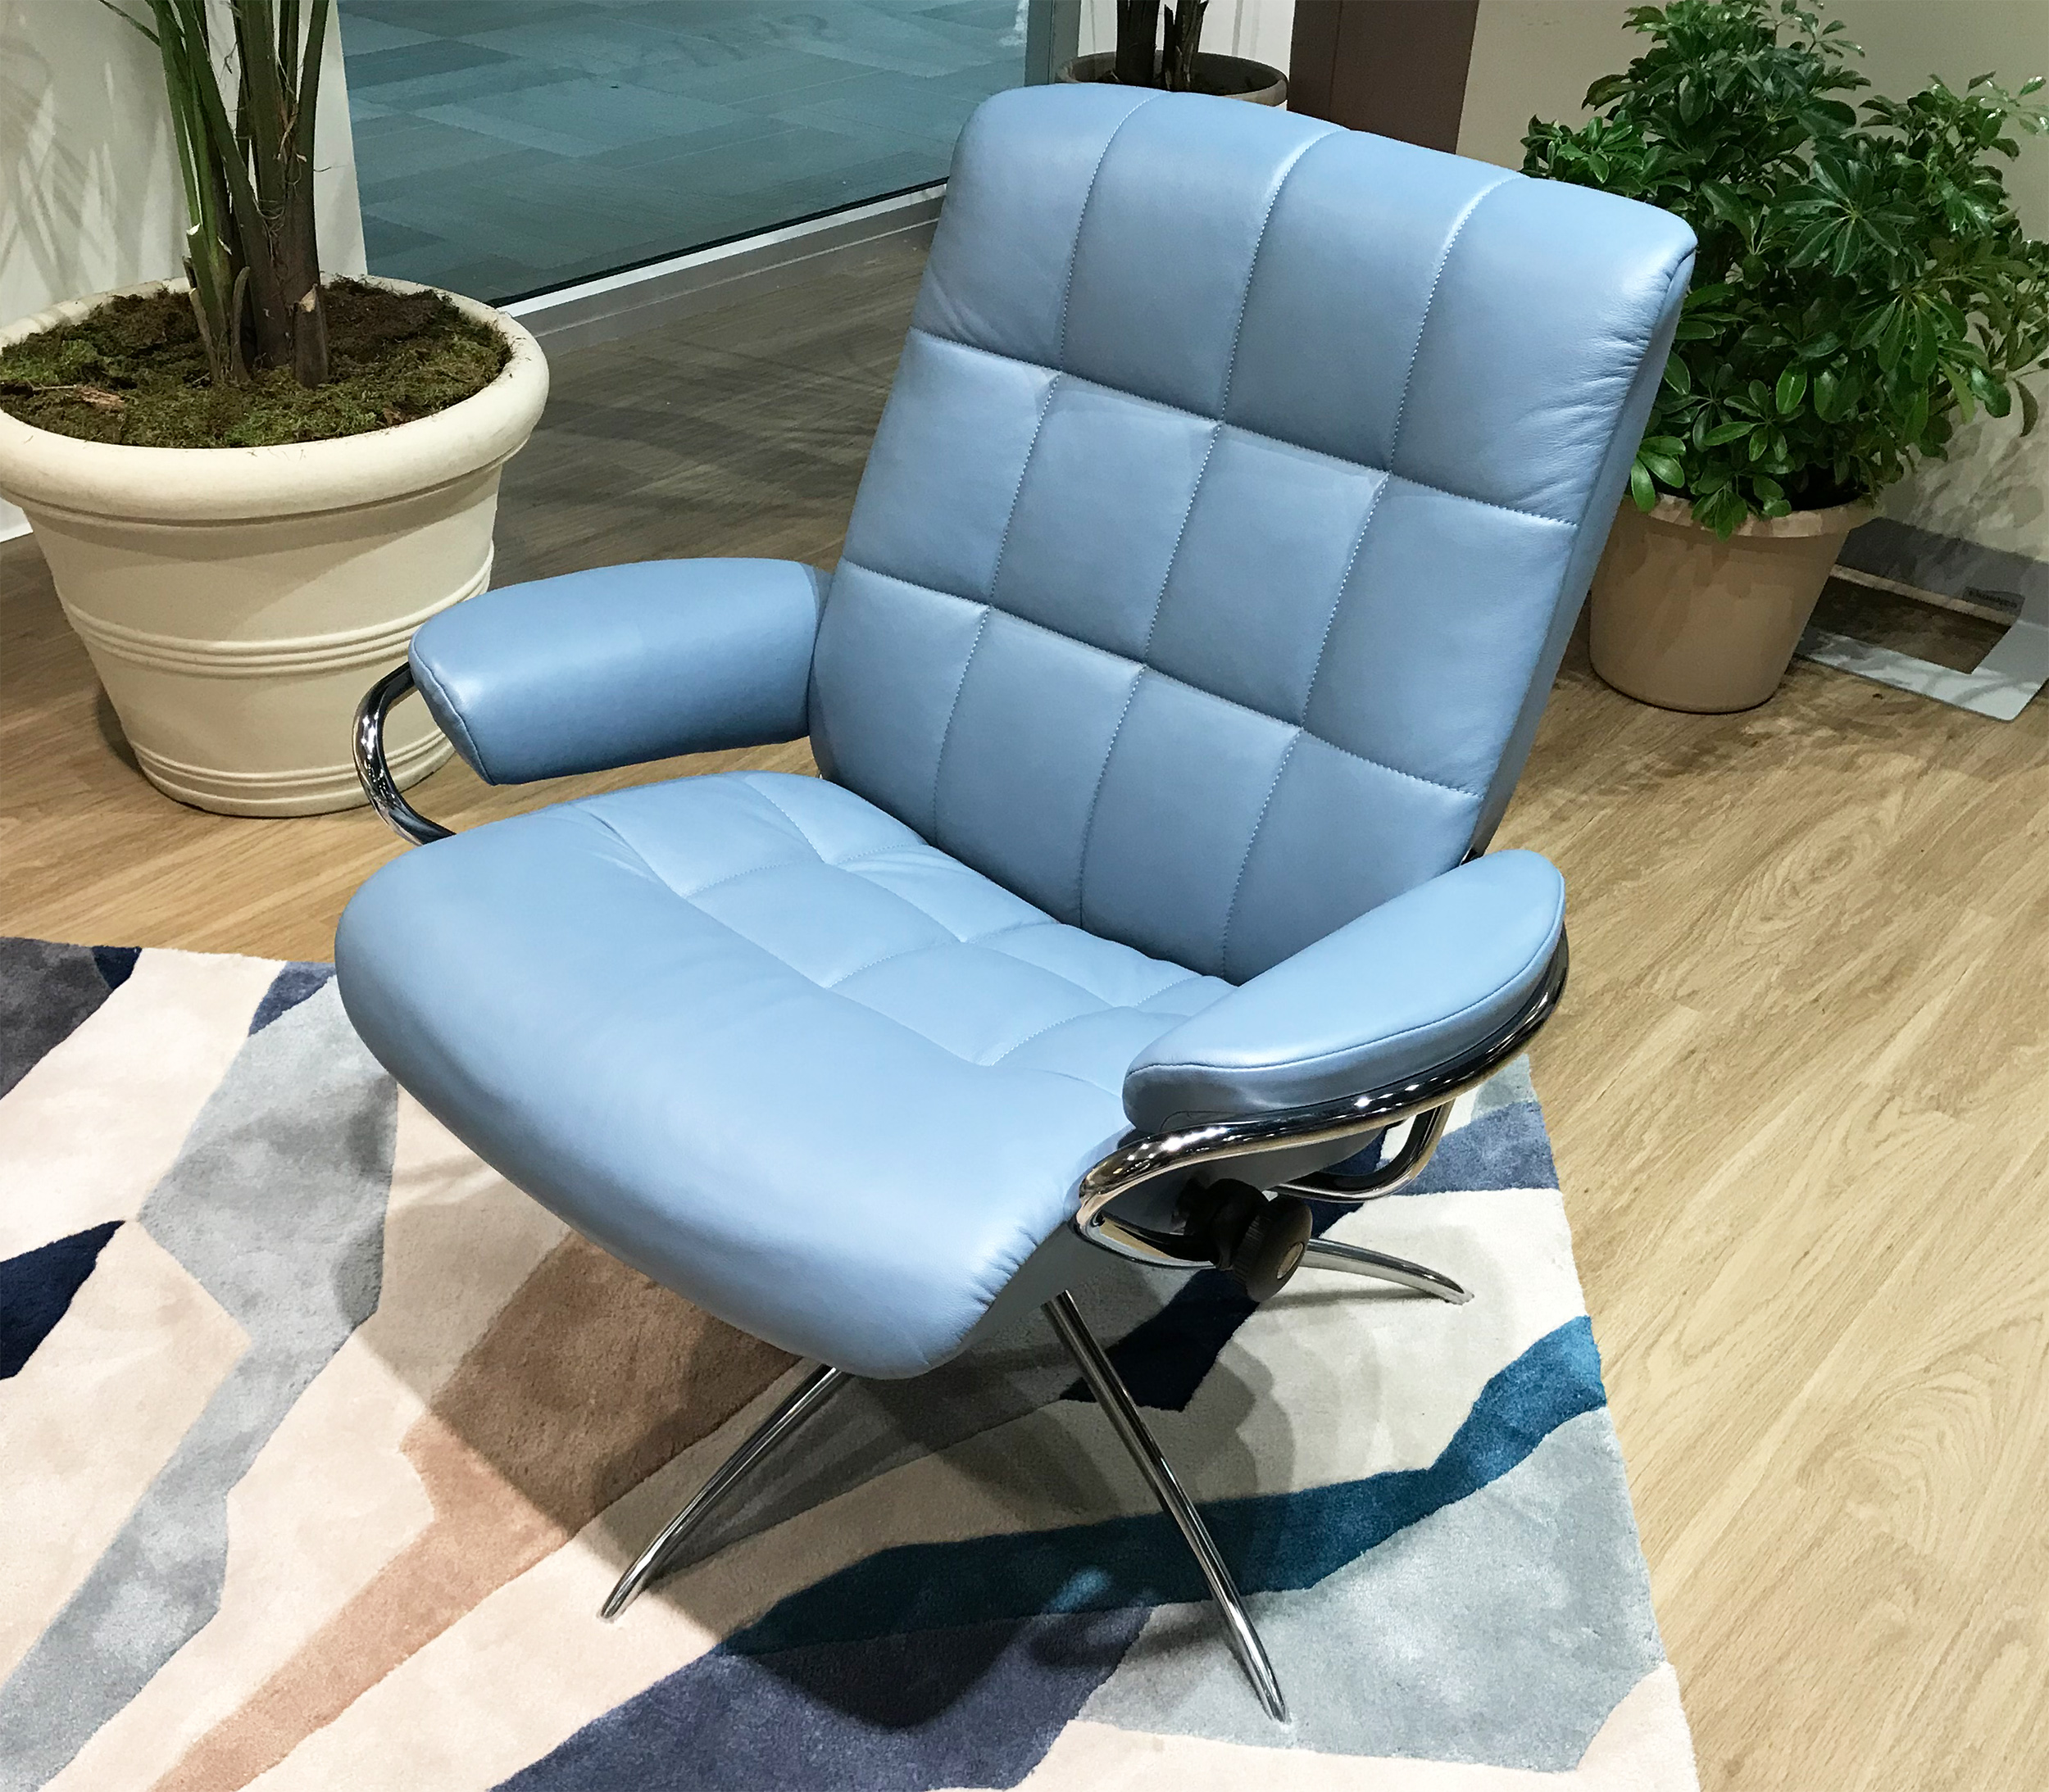 Stressless London Low Back Leather Recliner In Paloma